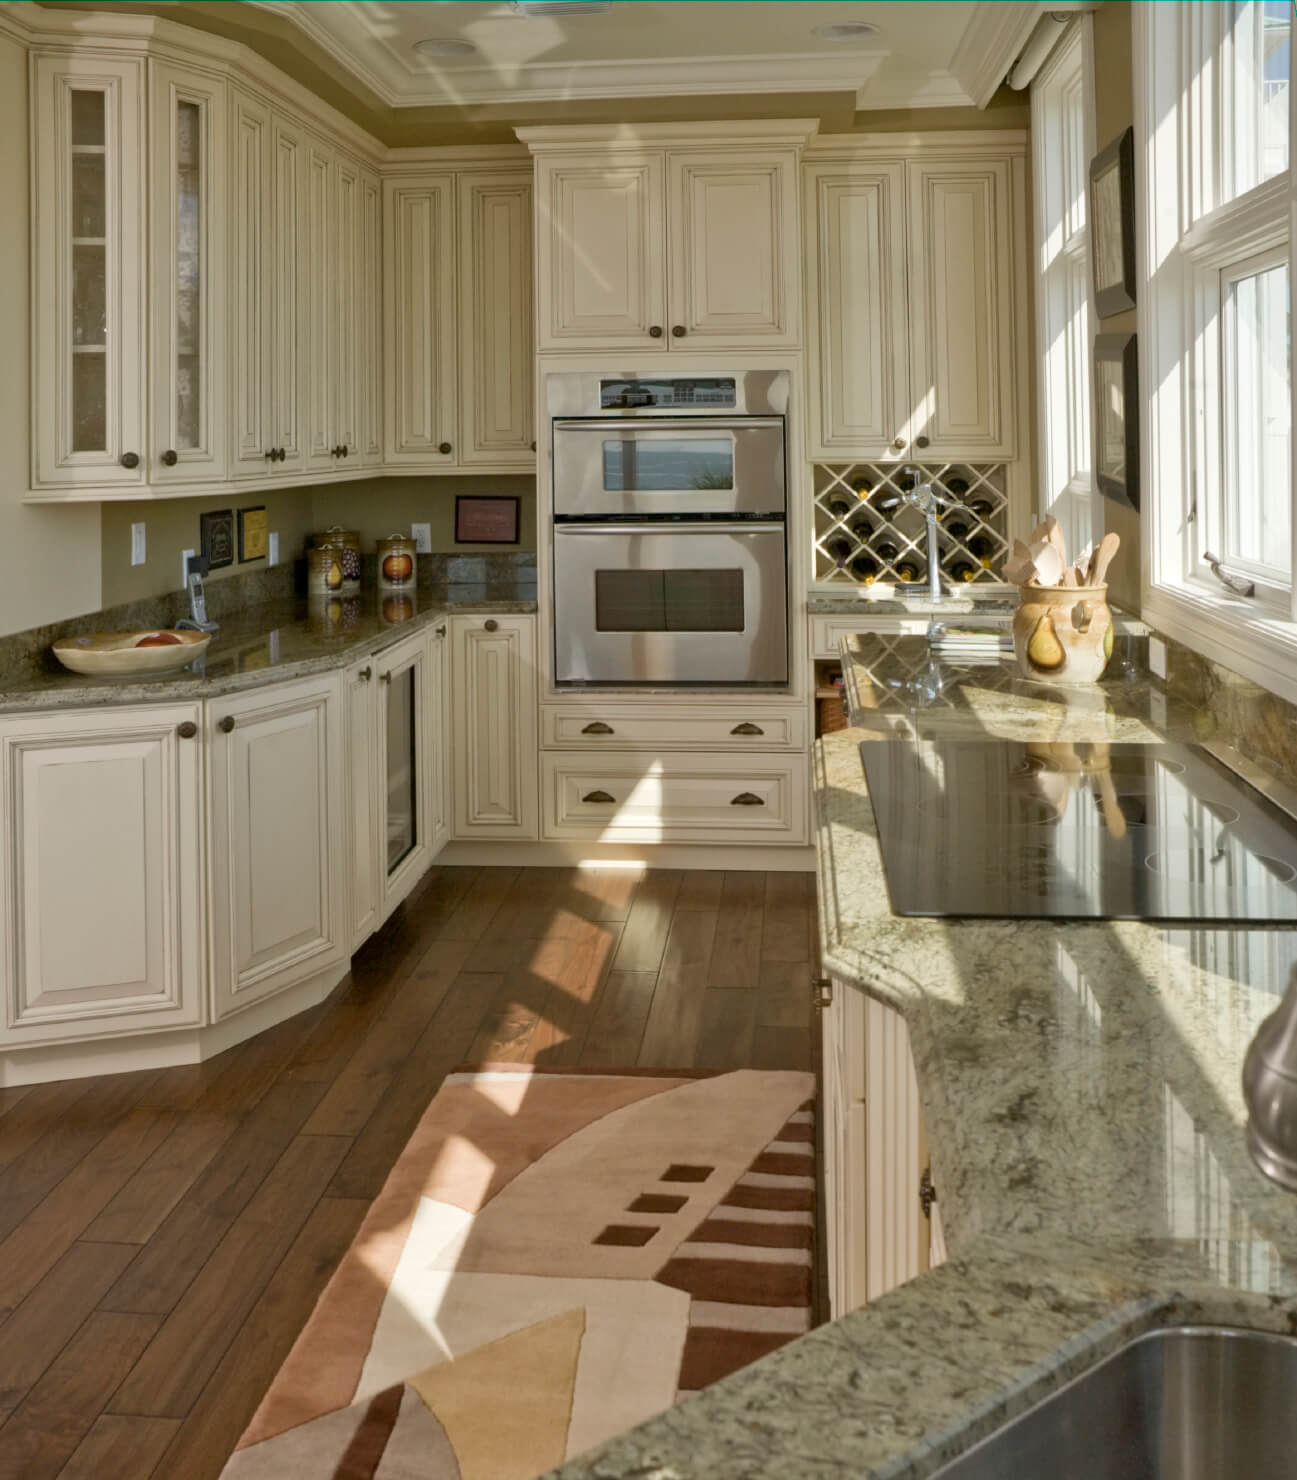 White cabinetry and light hardwood flooring surround large dark green